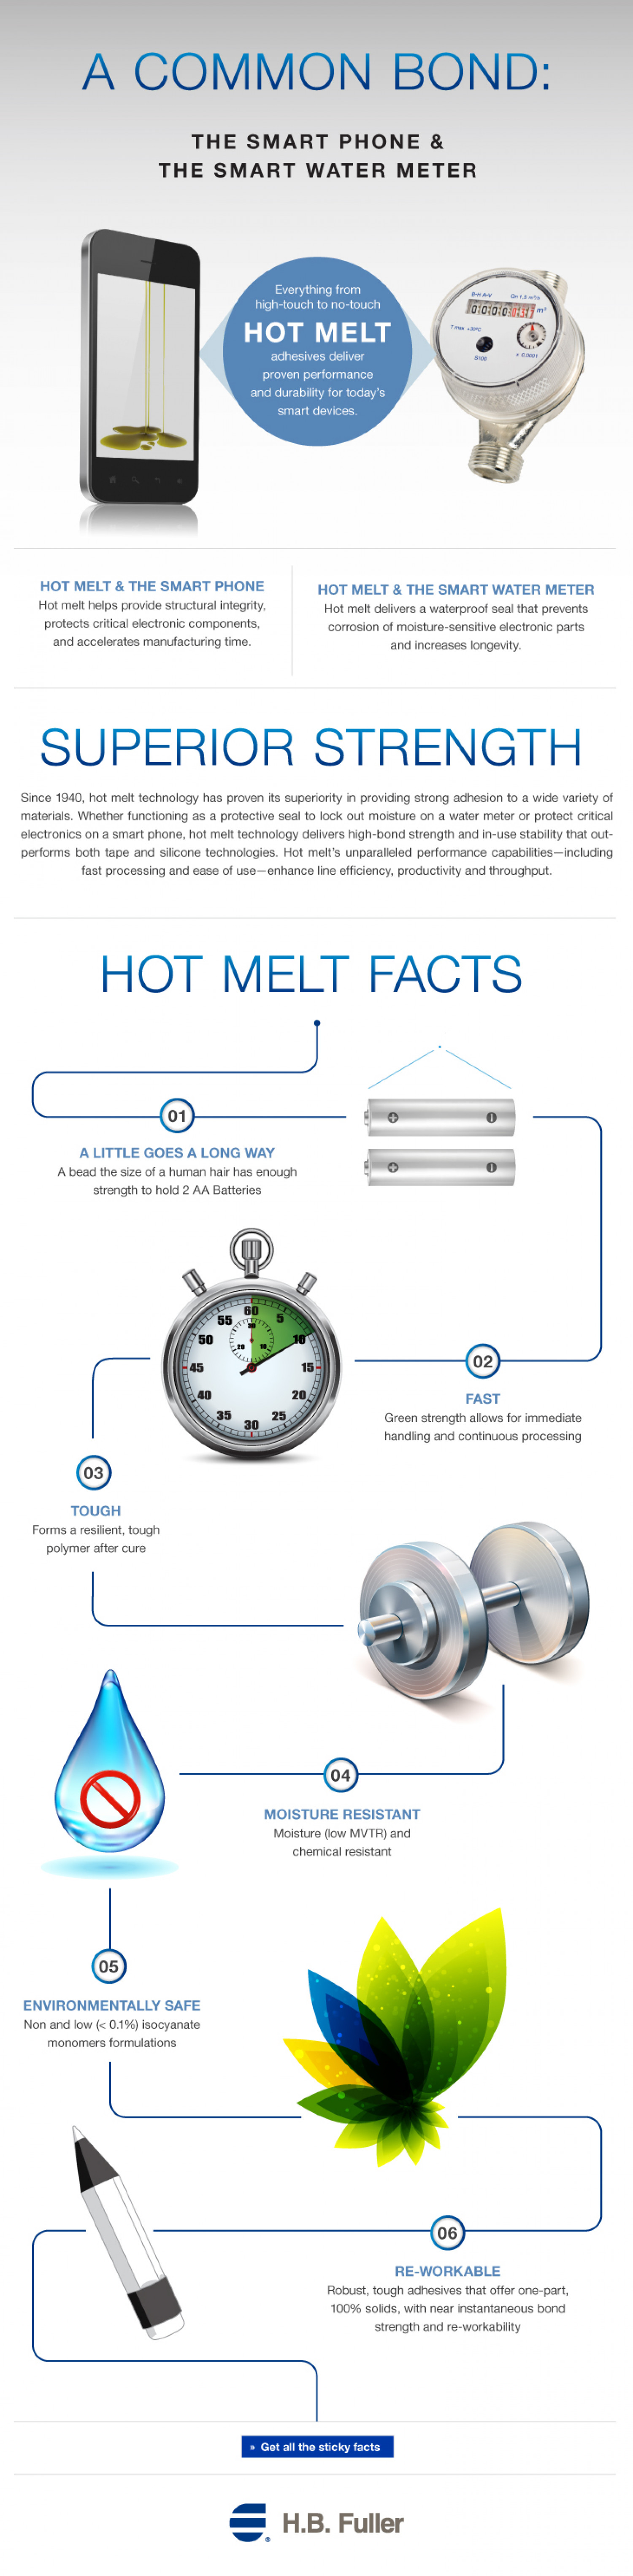 A Common Bond: Hot Melt Adhesives Connecting Unlikely Electronics Infographic